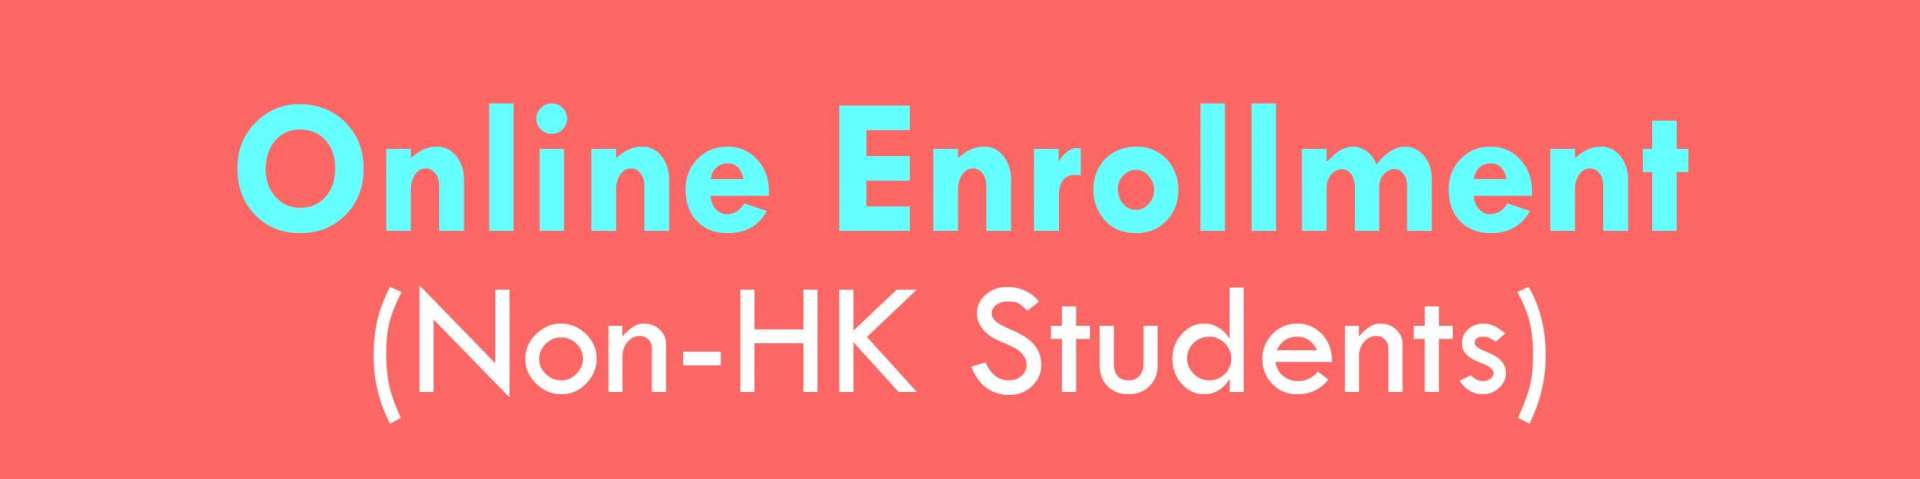 Enrollment_Non-HK Students